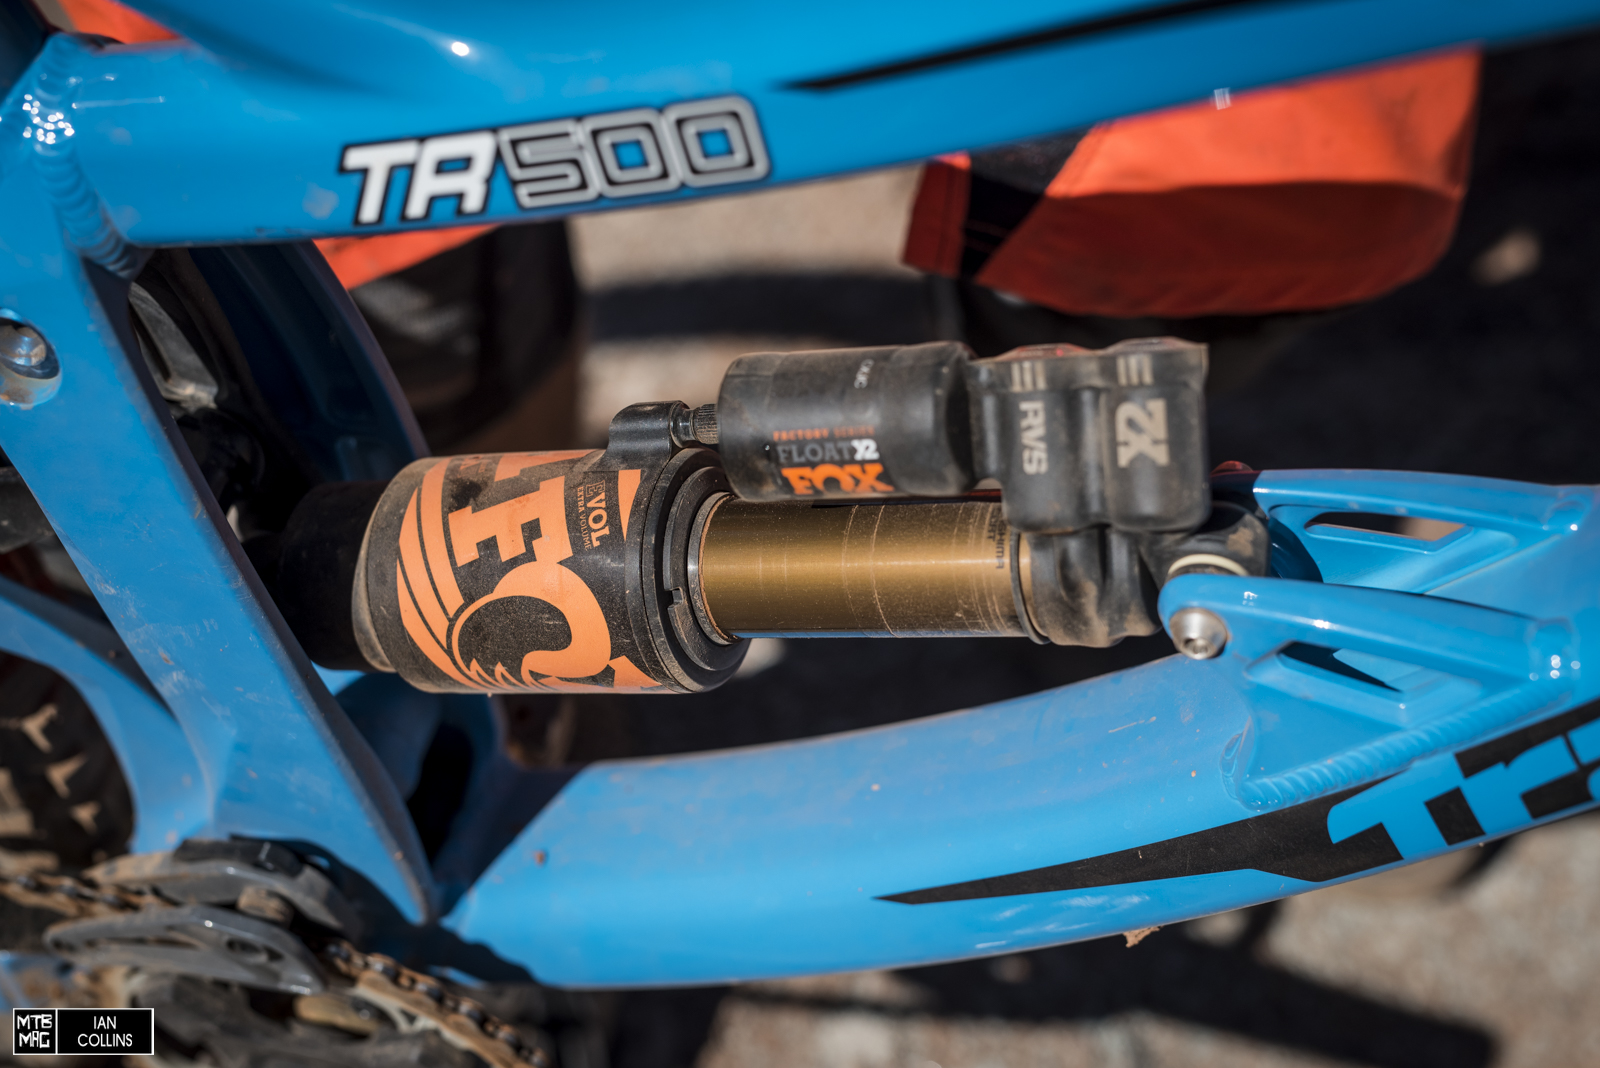 The Orange Fox decals work perfectly with his TLD kit.